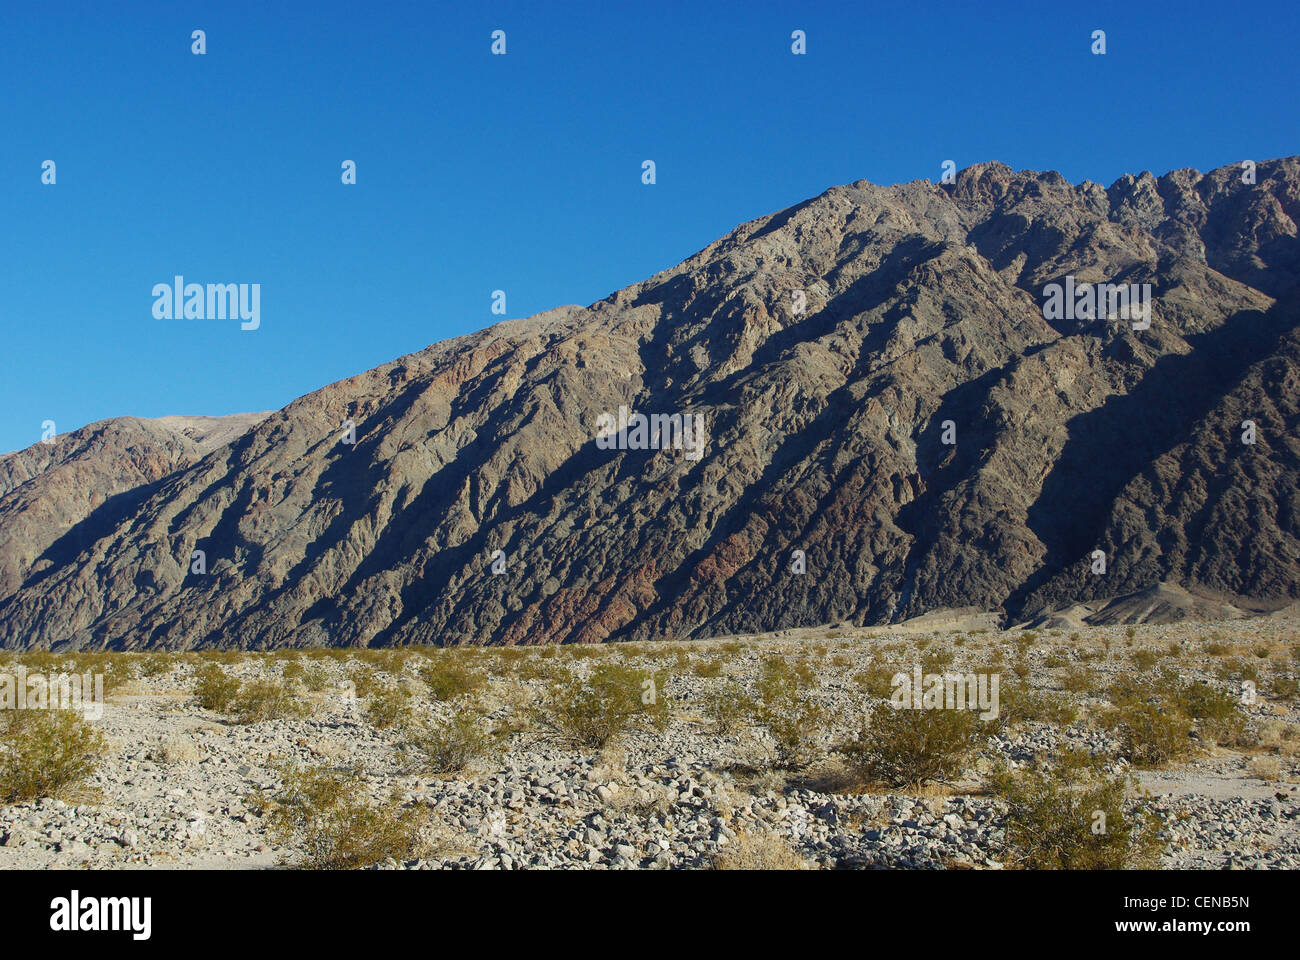 Desert and impressing mountains, Death Valley, California - Stock Image